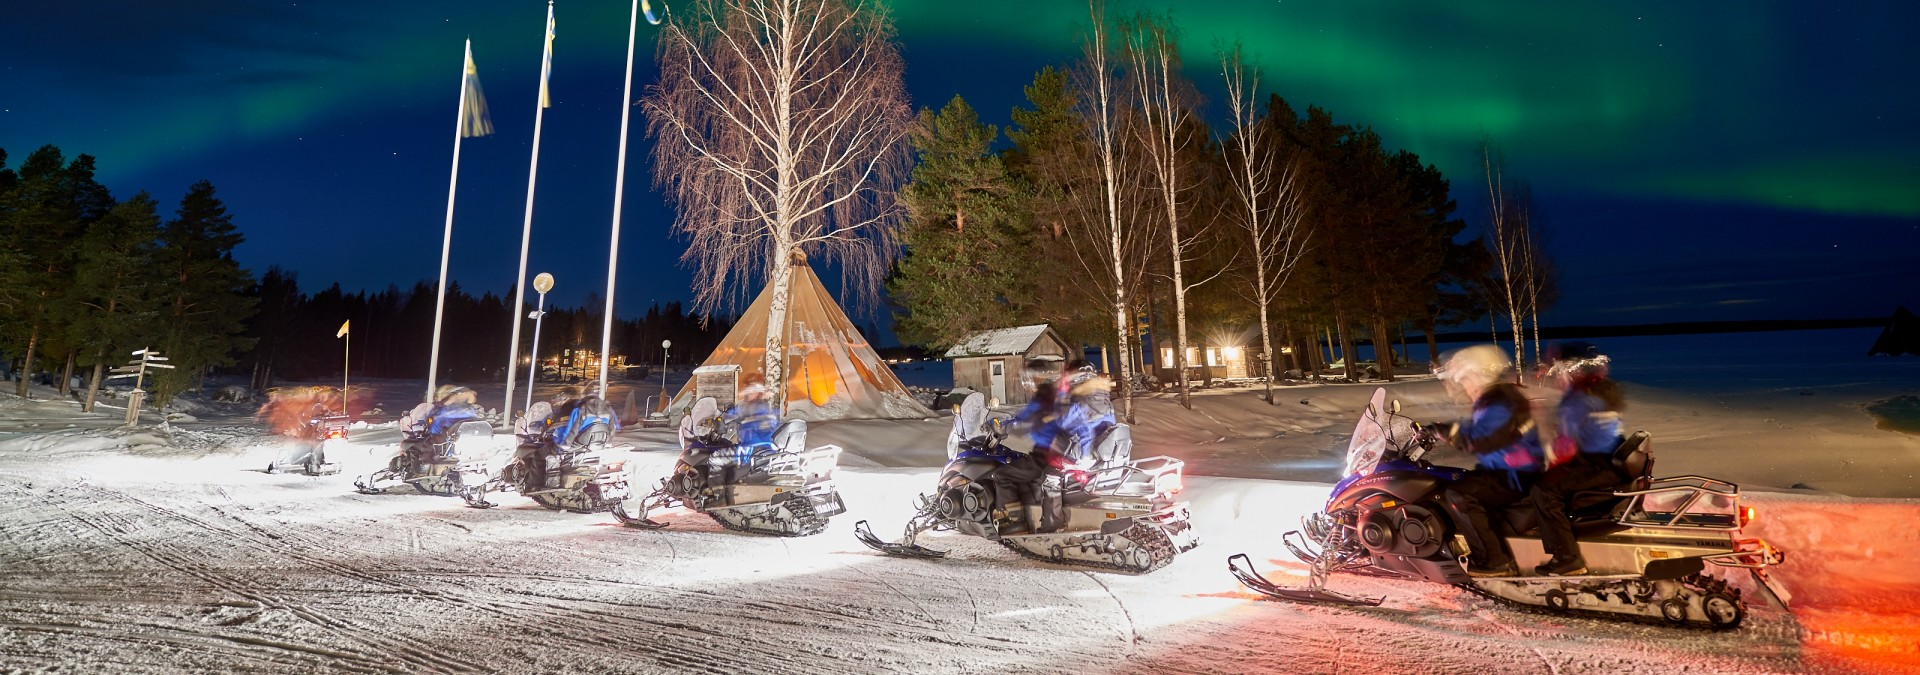 2017, Brandon Lodge, Credit Graeme Richardson, January, Lulea, Sweden, Swedish Lapland